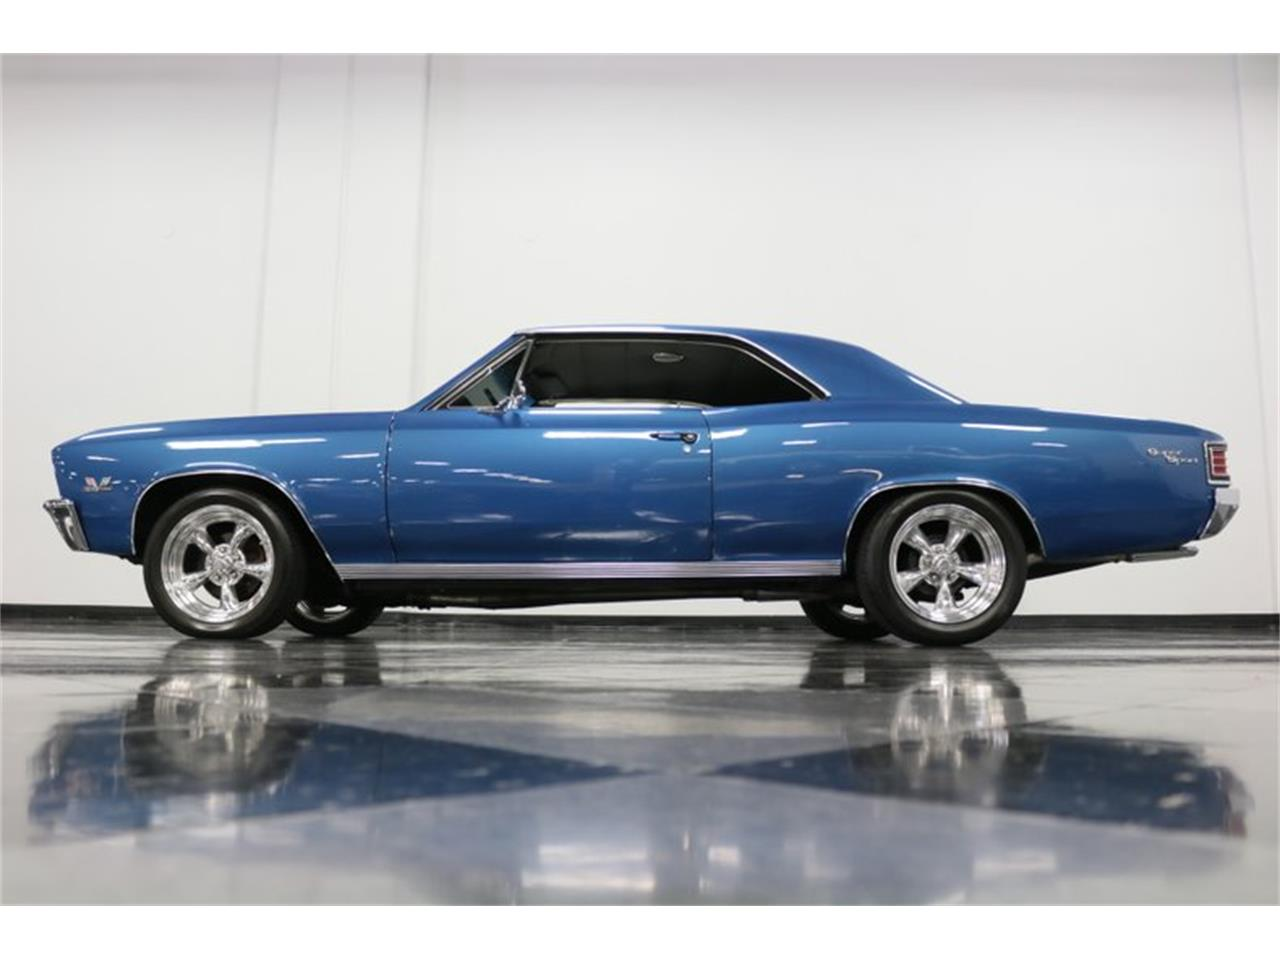 Large Picture of Classic '67 Chevrolet Chevelle located in Texas Offered by Streetside Classics - Dallas / Fort Worth - Q46D